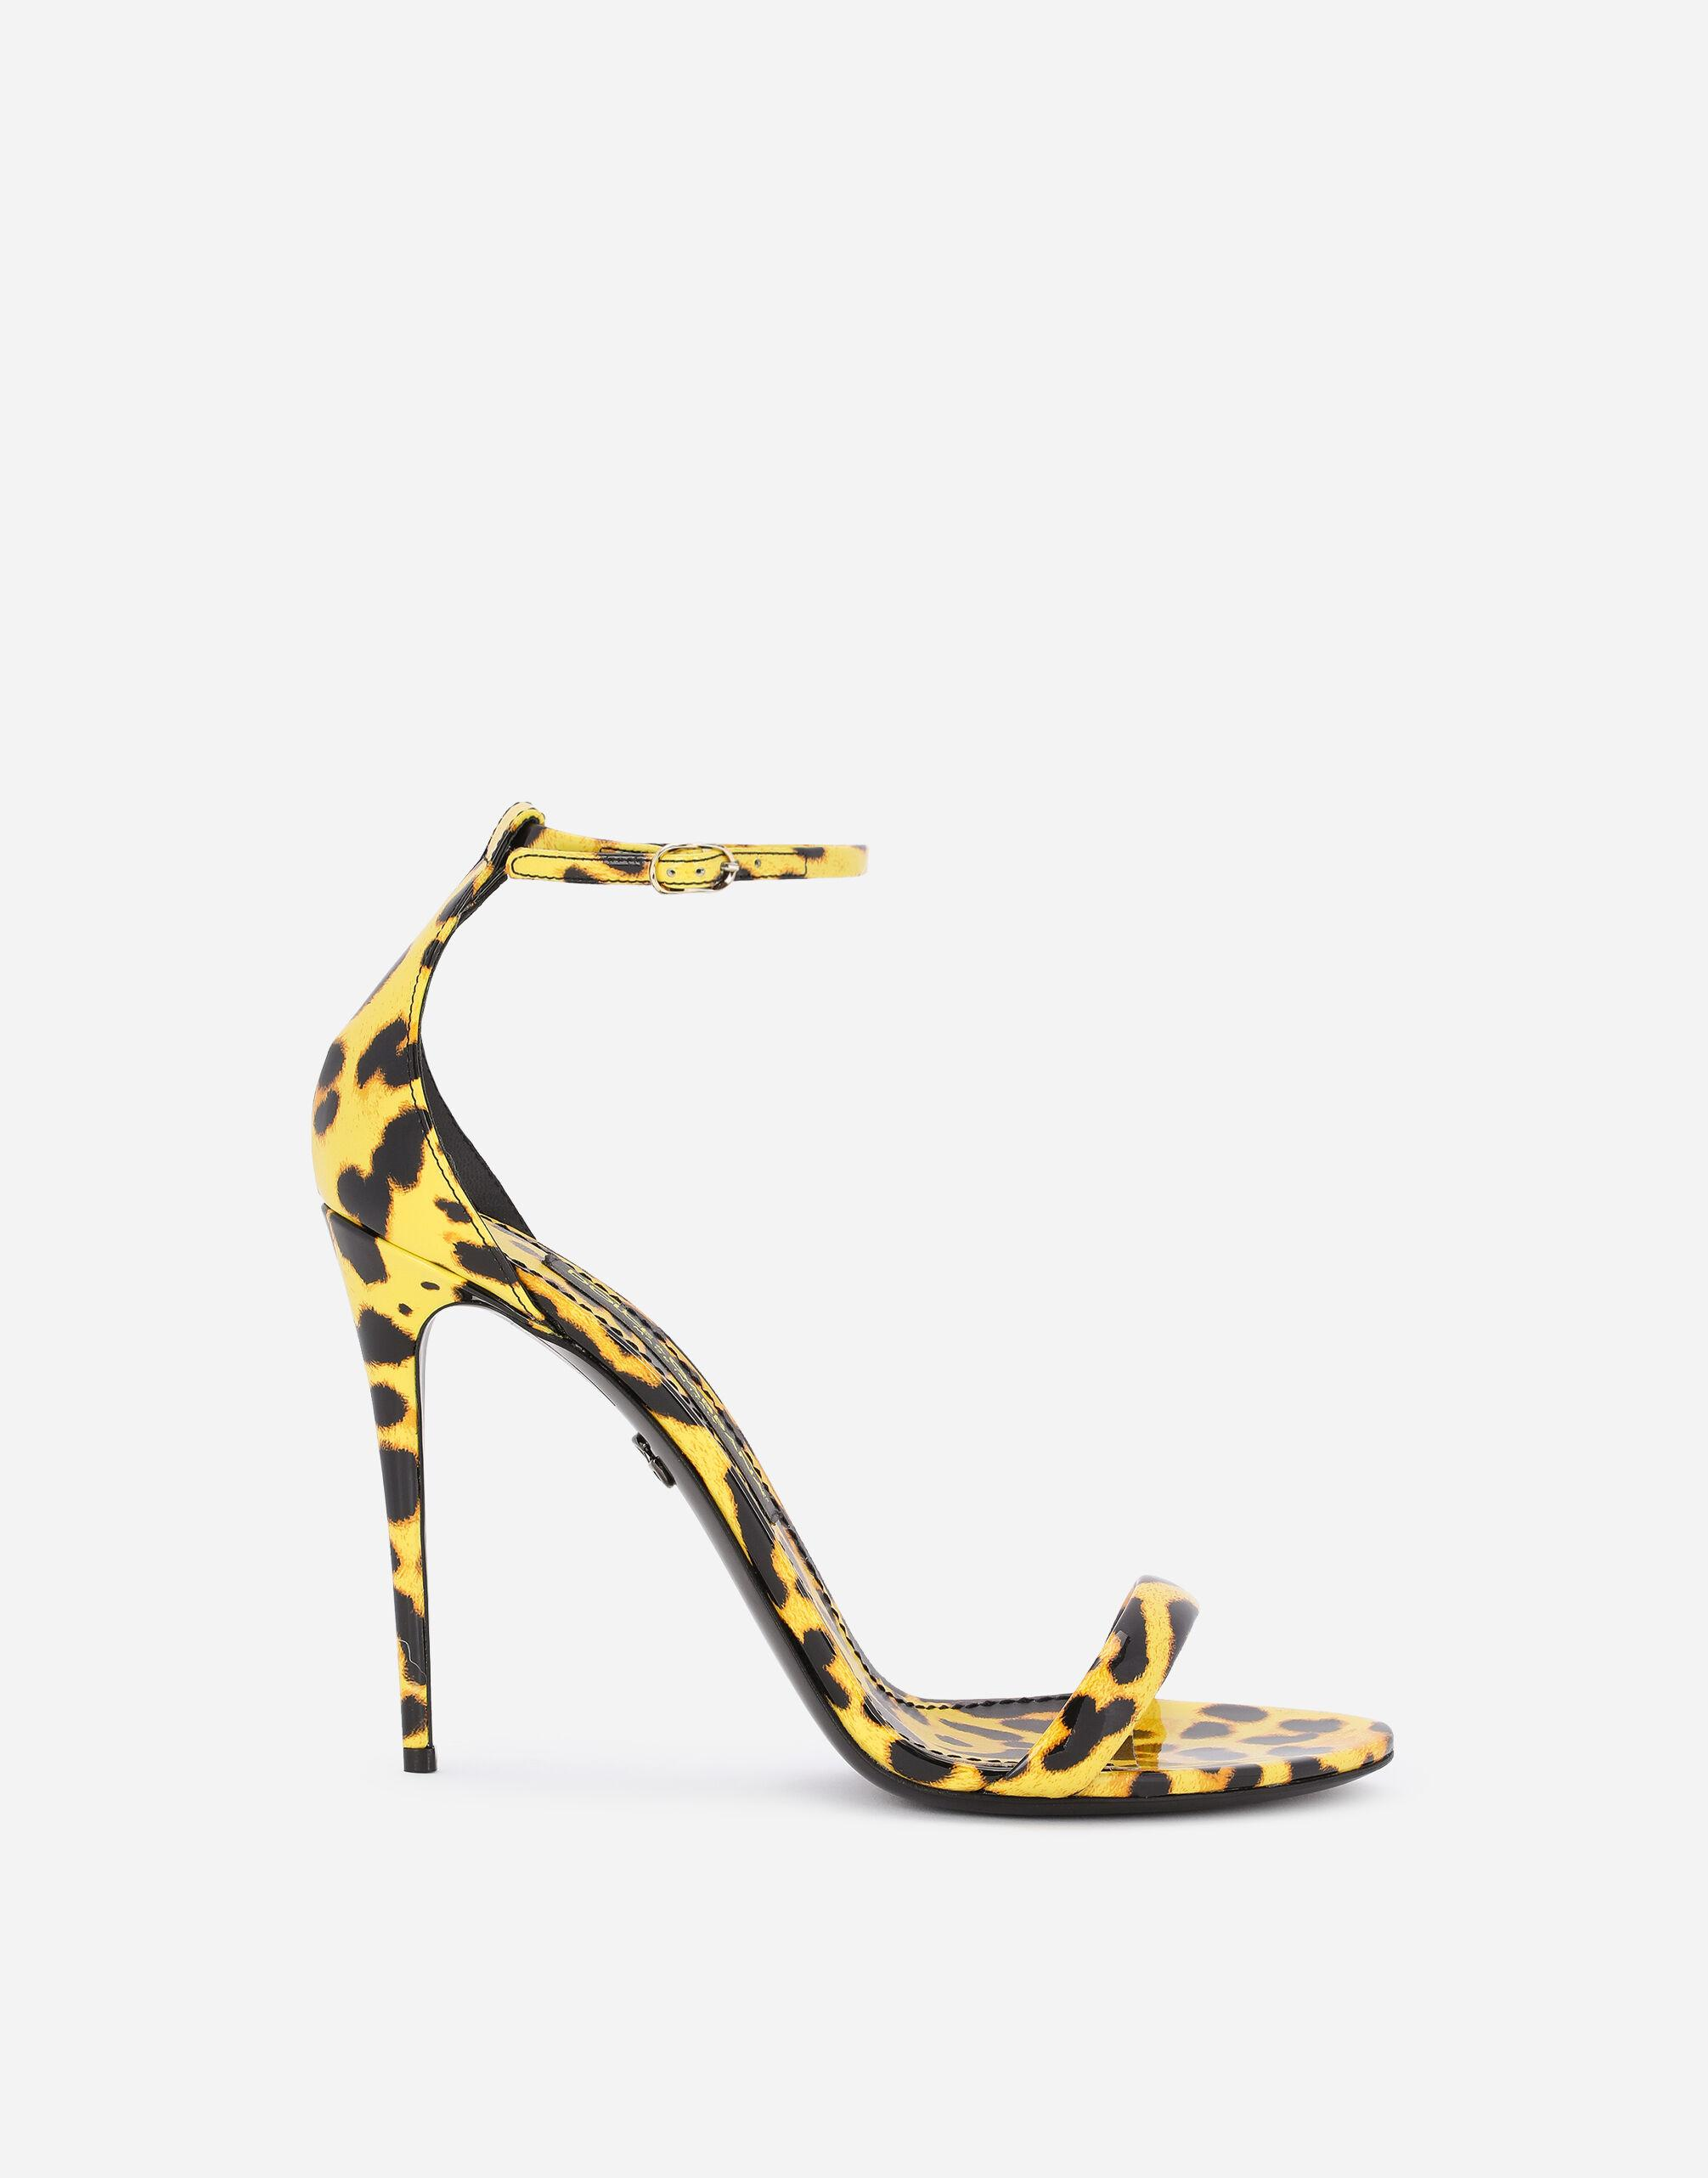 Leopard-print patent leather sandals with yellow base